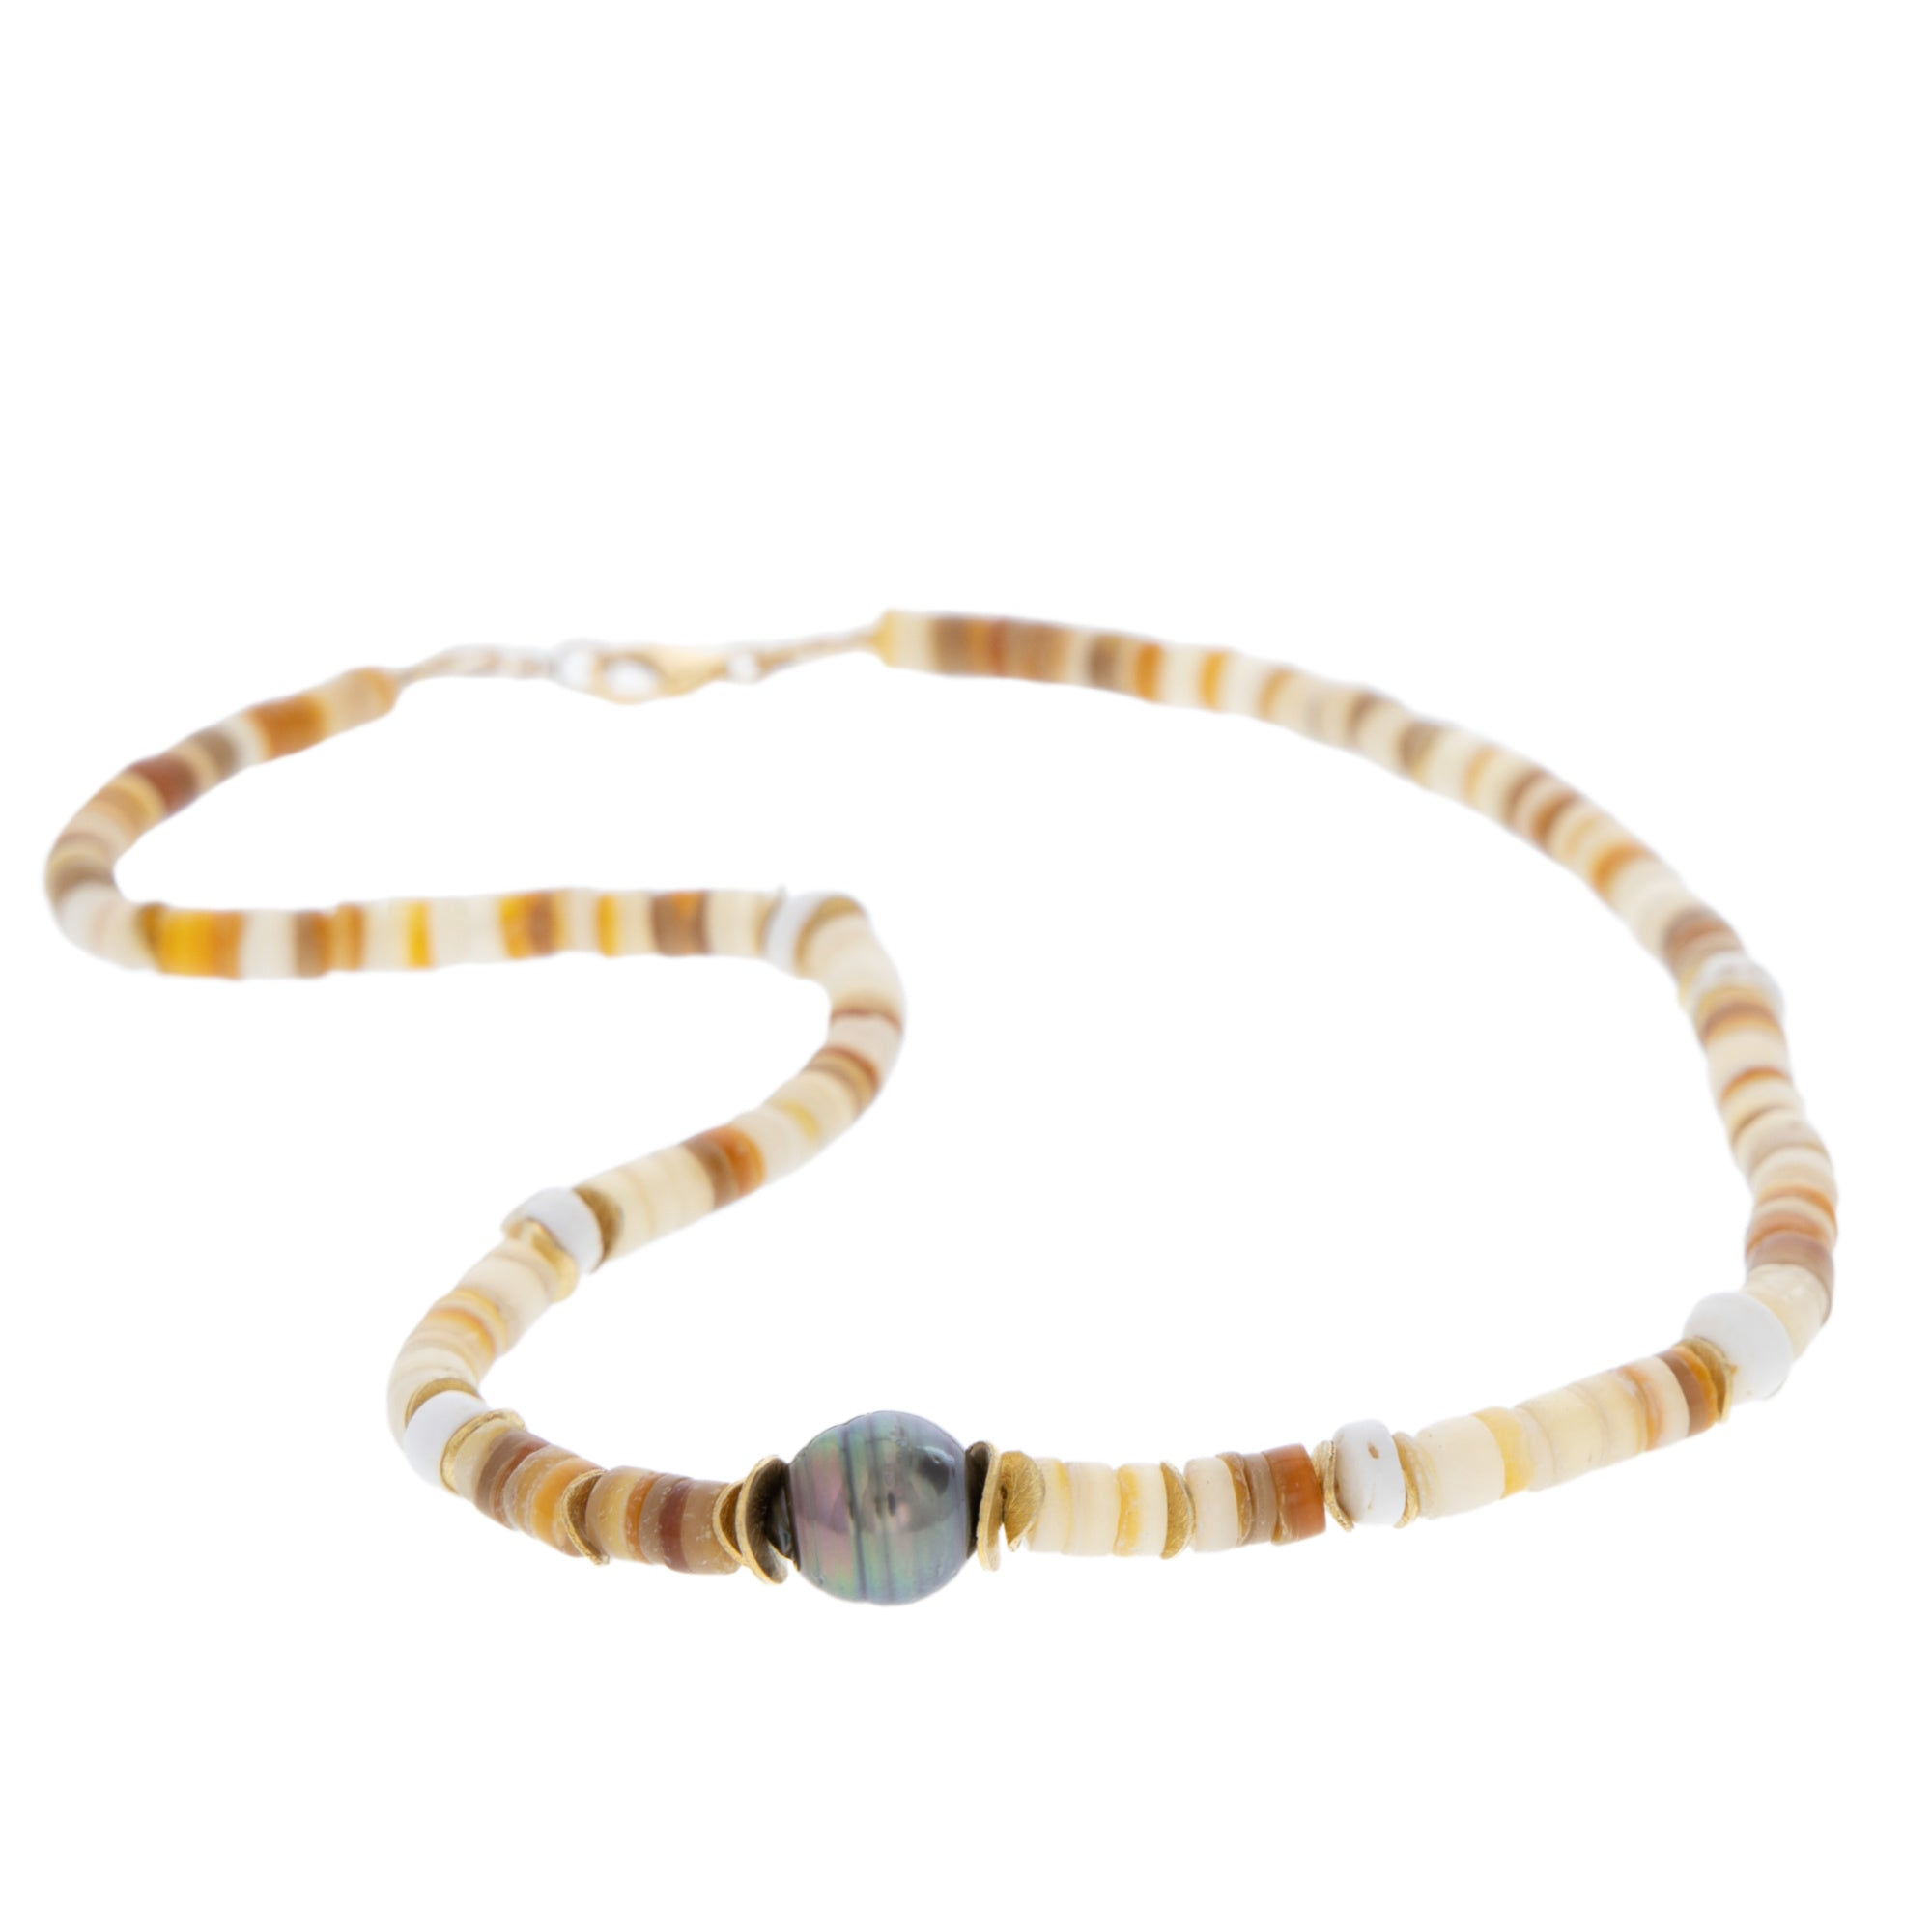 Haumea Choker Necklace - 21 Degrees North Designs